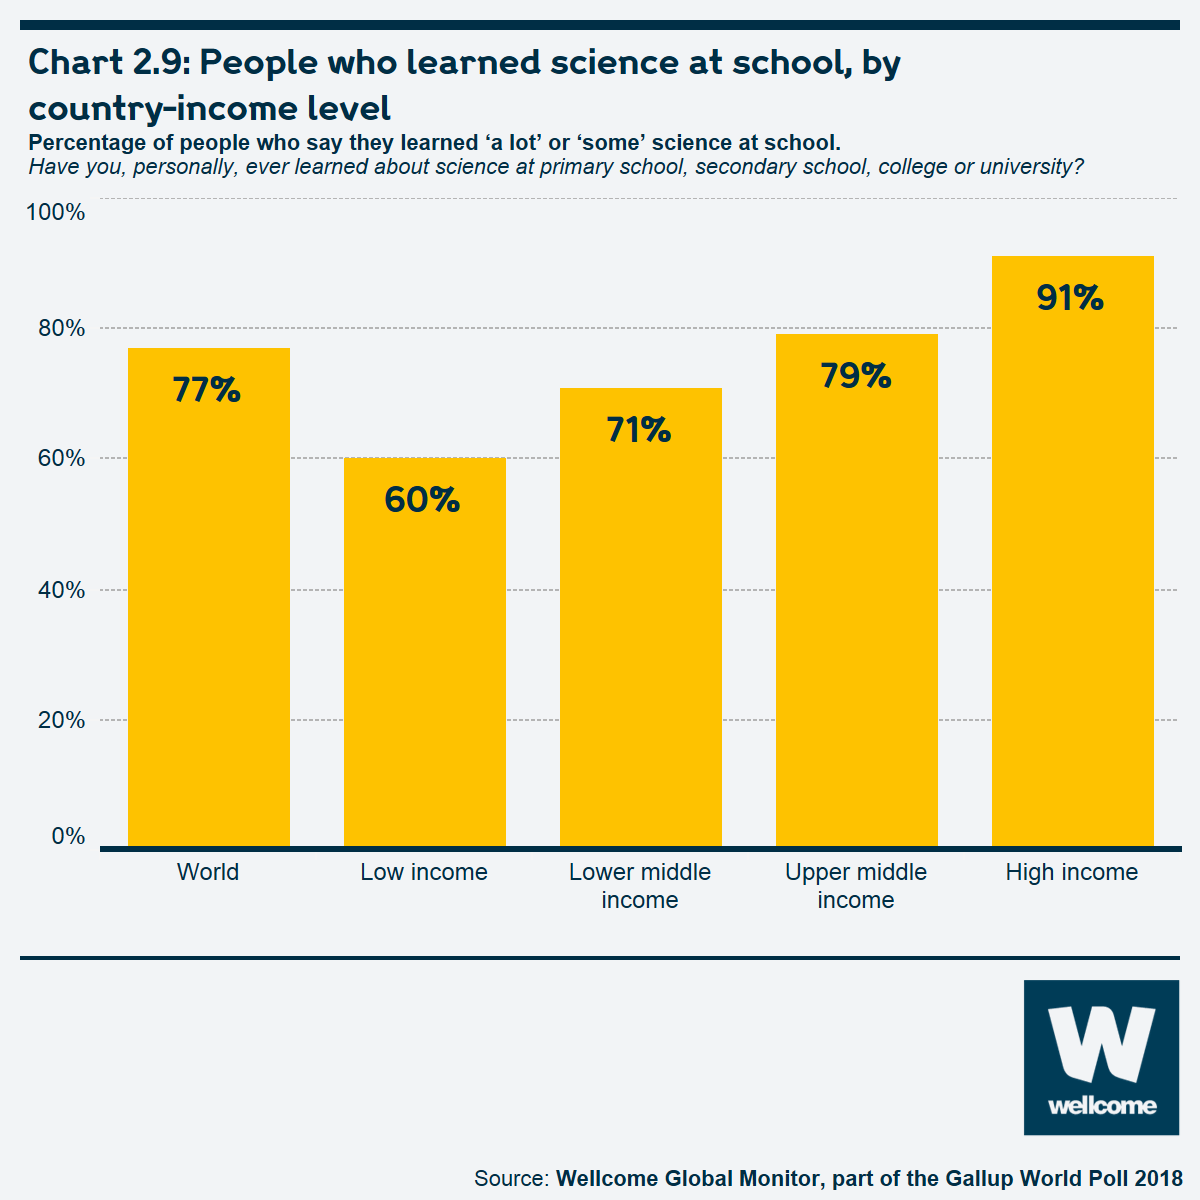 Chart 2.9: People who learned science at school, by country-income level